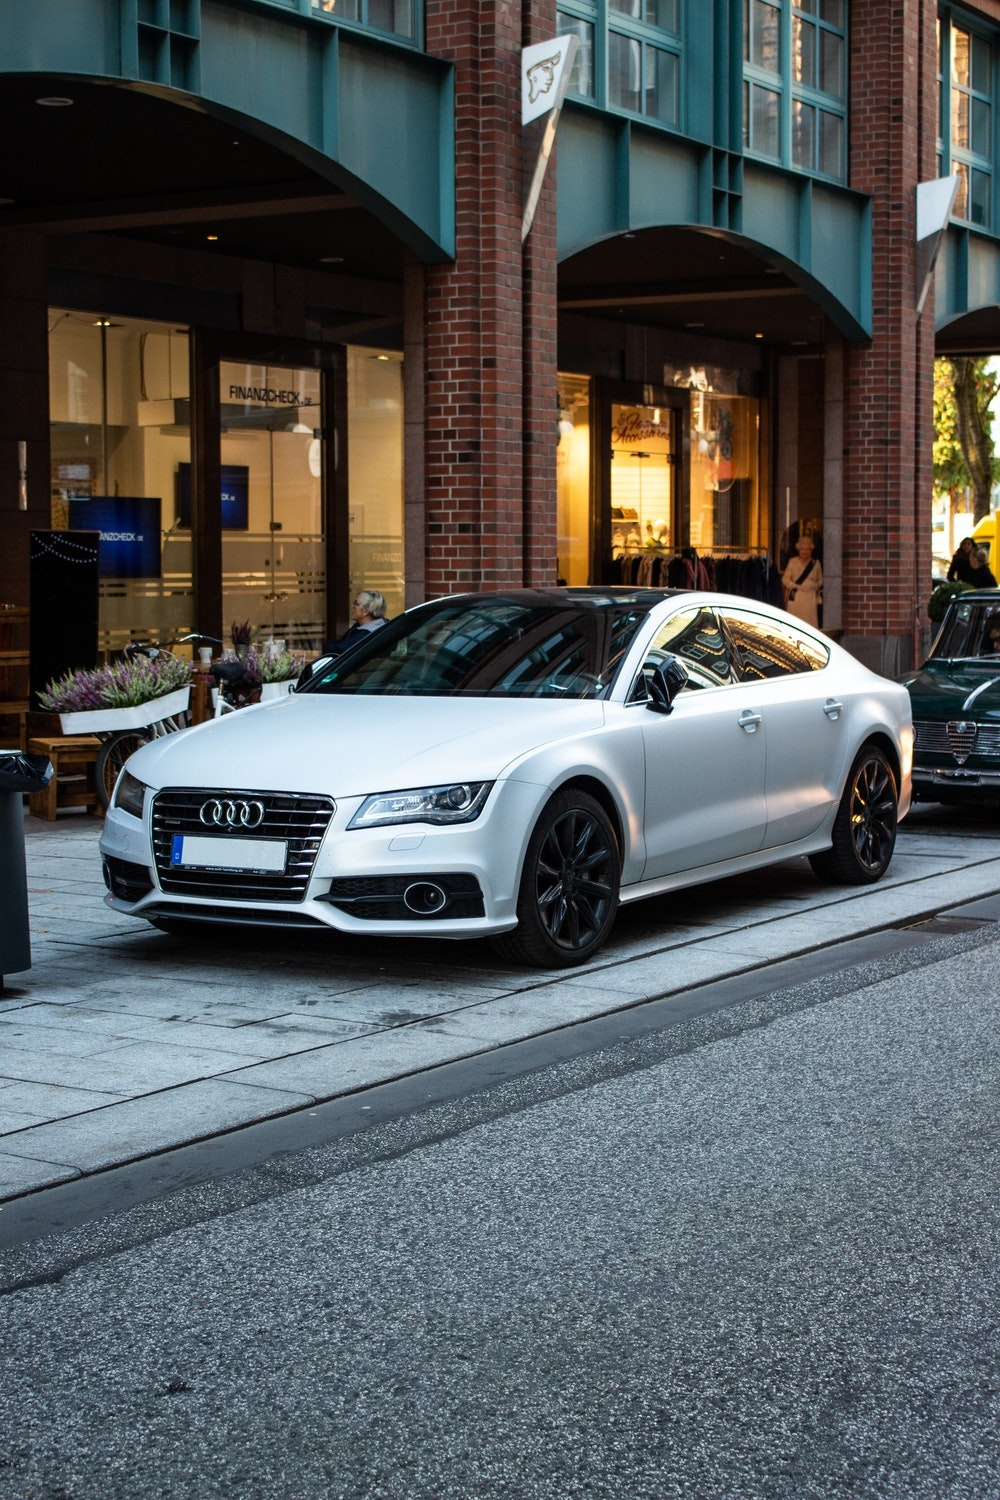 Audi A8 Modified Fresh 500 Audi Pictures Hd Download Free Images On Unsplash-2124 Of Lovely Audi A8 Modified-2124